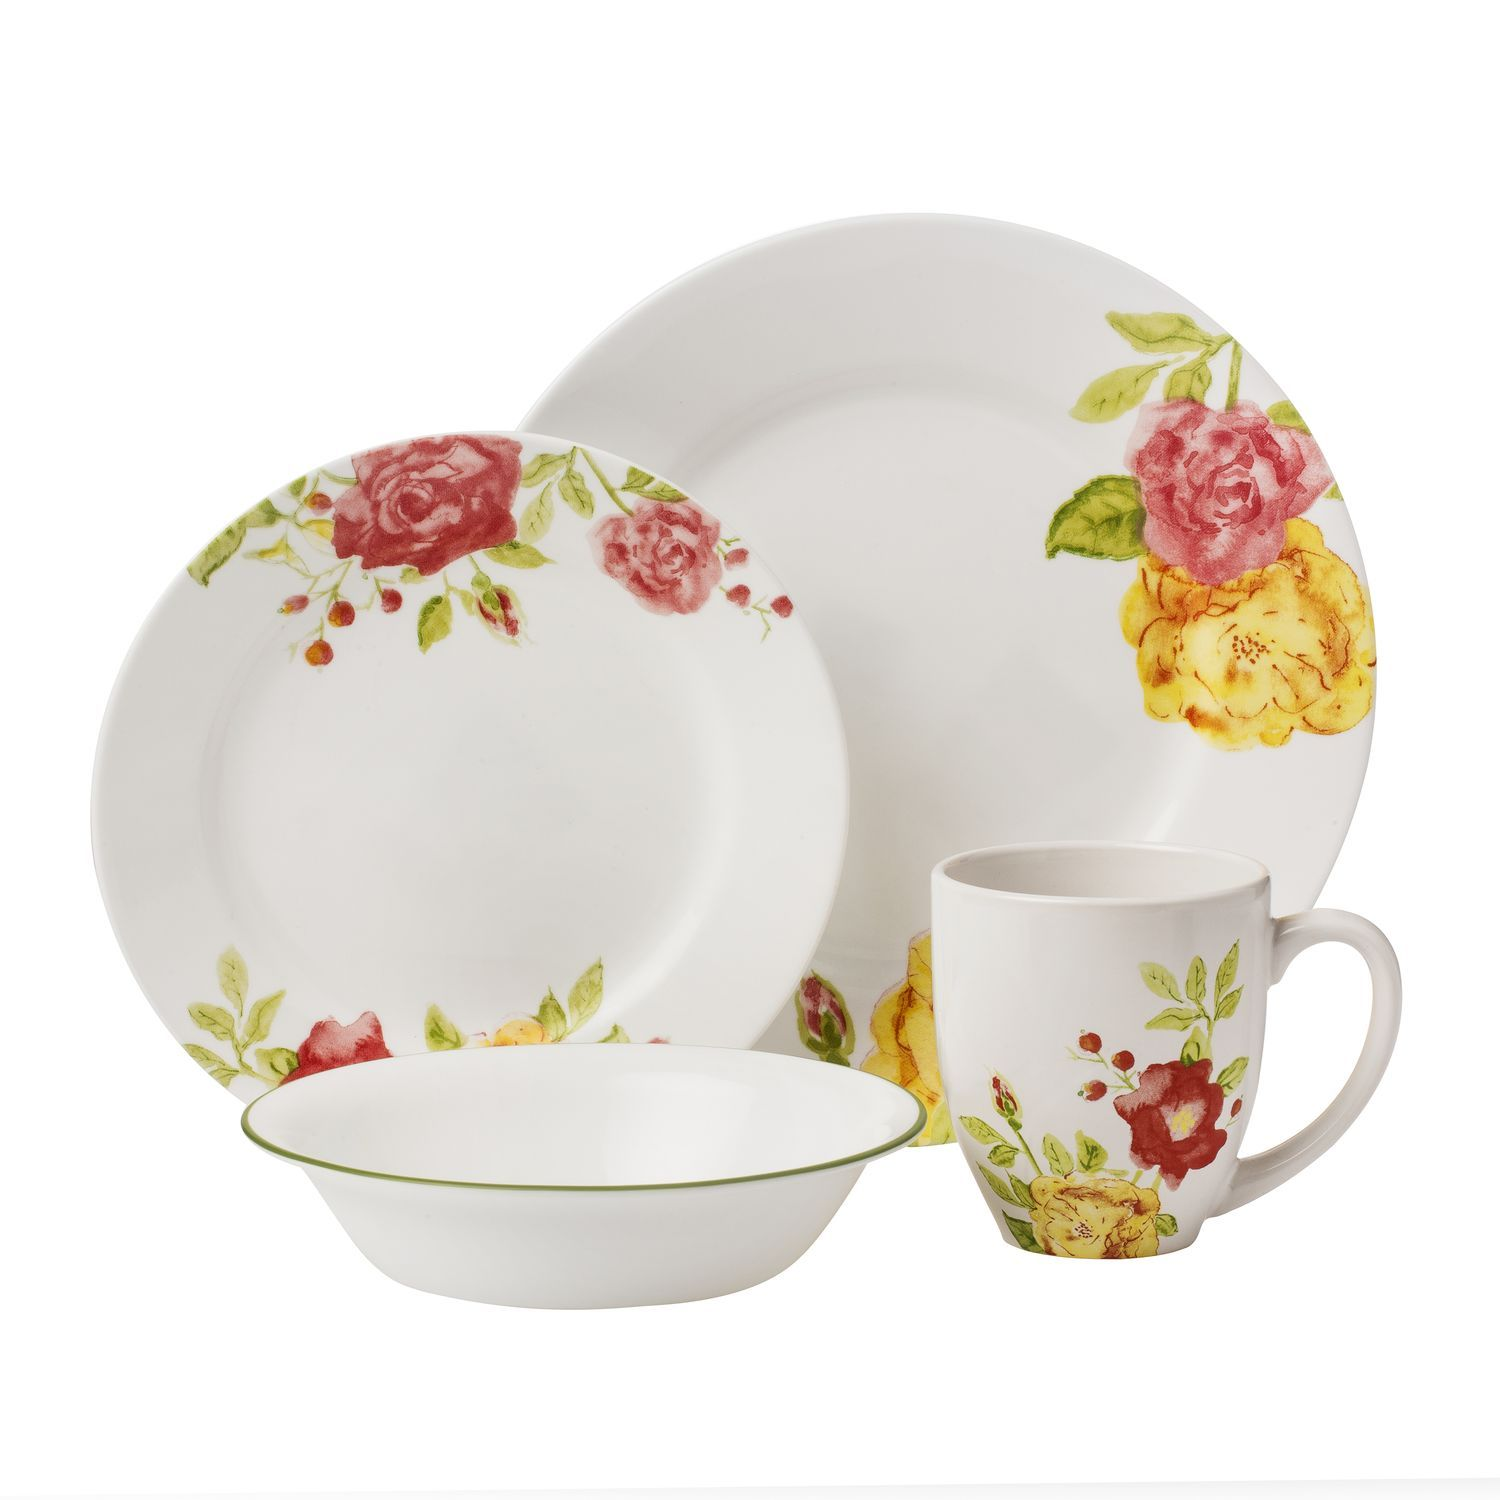 Corelle® Boutique™ Emma Jane 16-pc Dinnerware Set - Corelle  sc 1 st  Pinterest & Corelle® Boutique™ Emma Jane 16-pc Dinnerware Set - Corelle | China ...